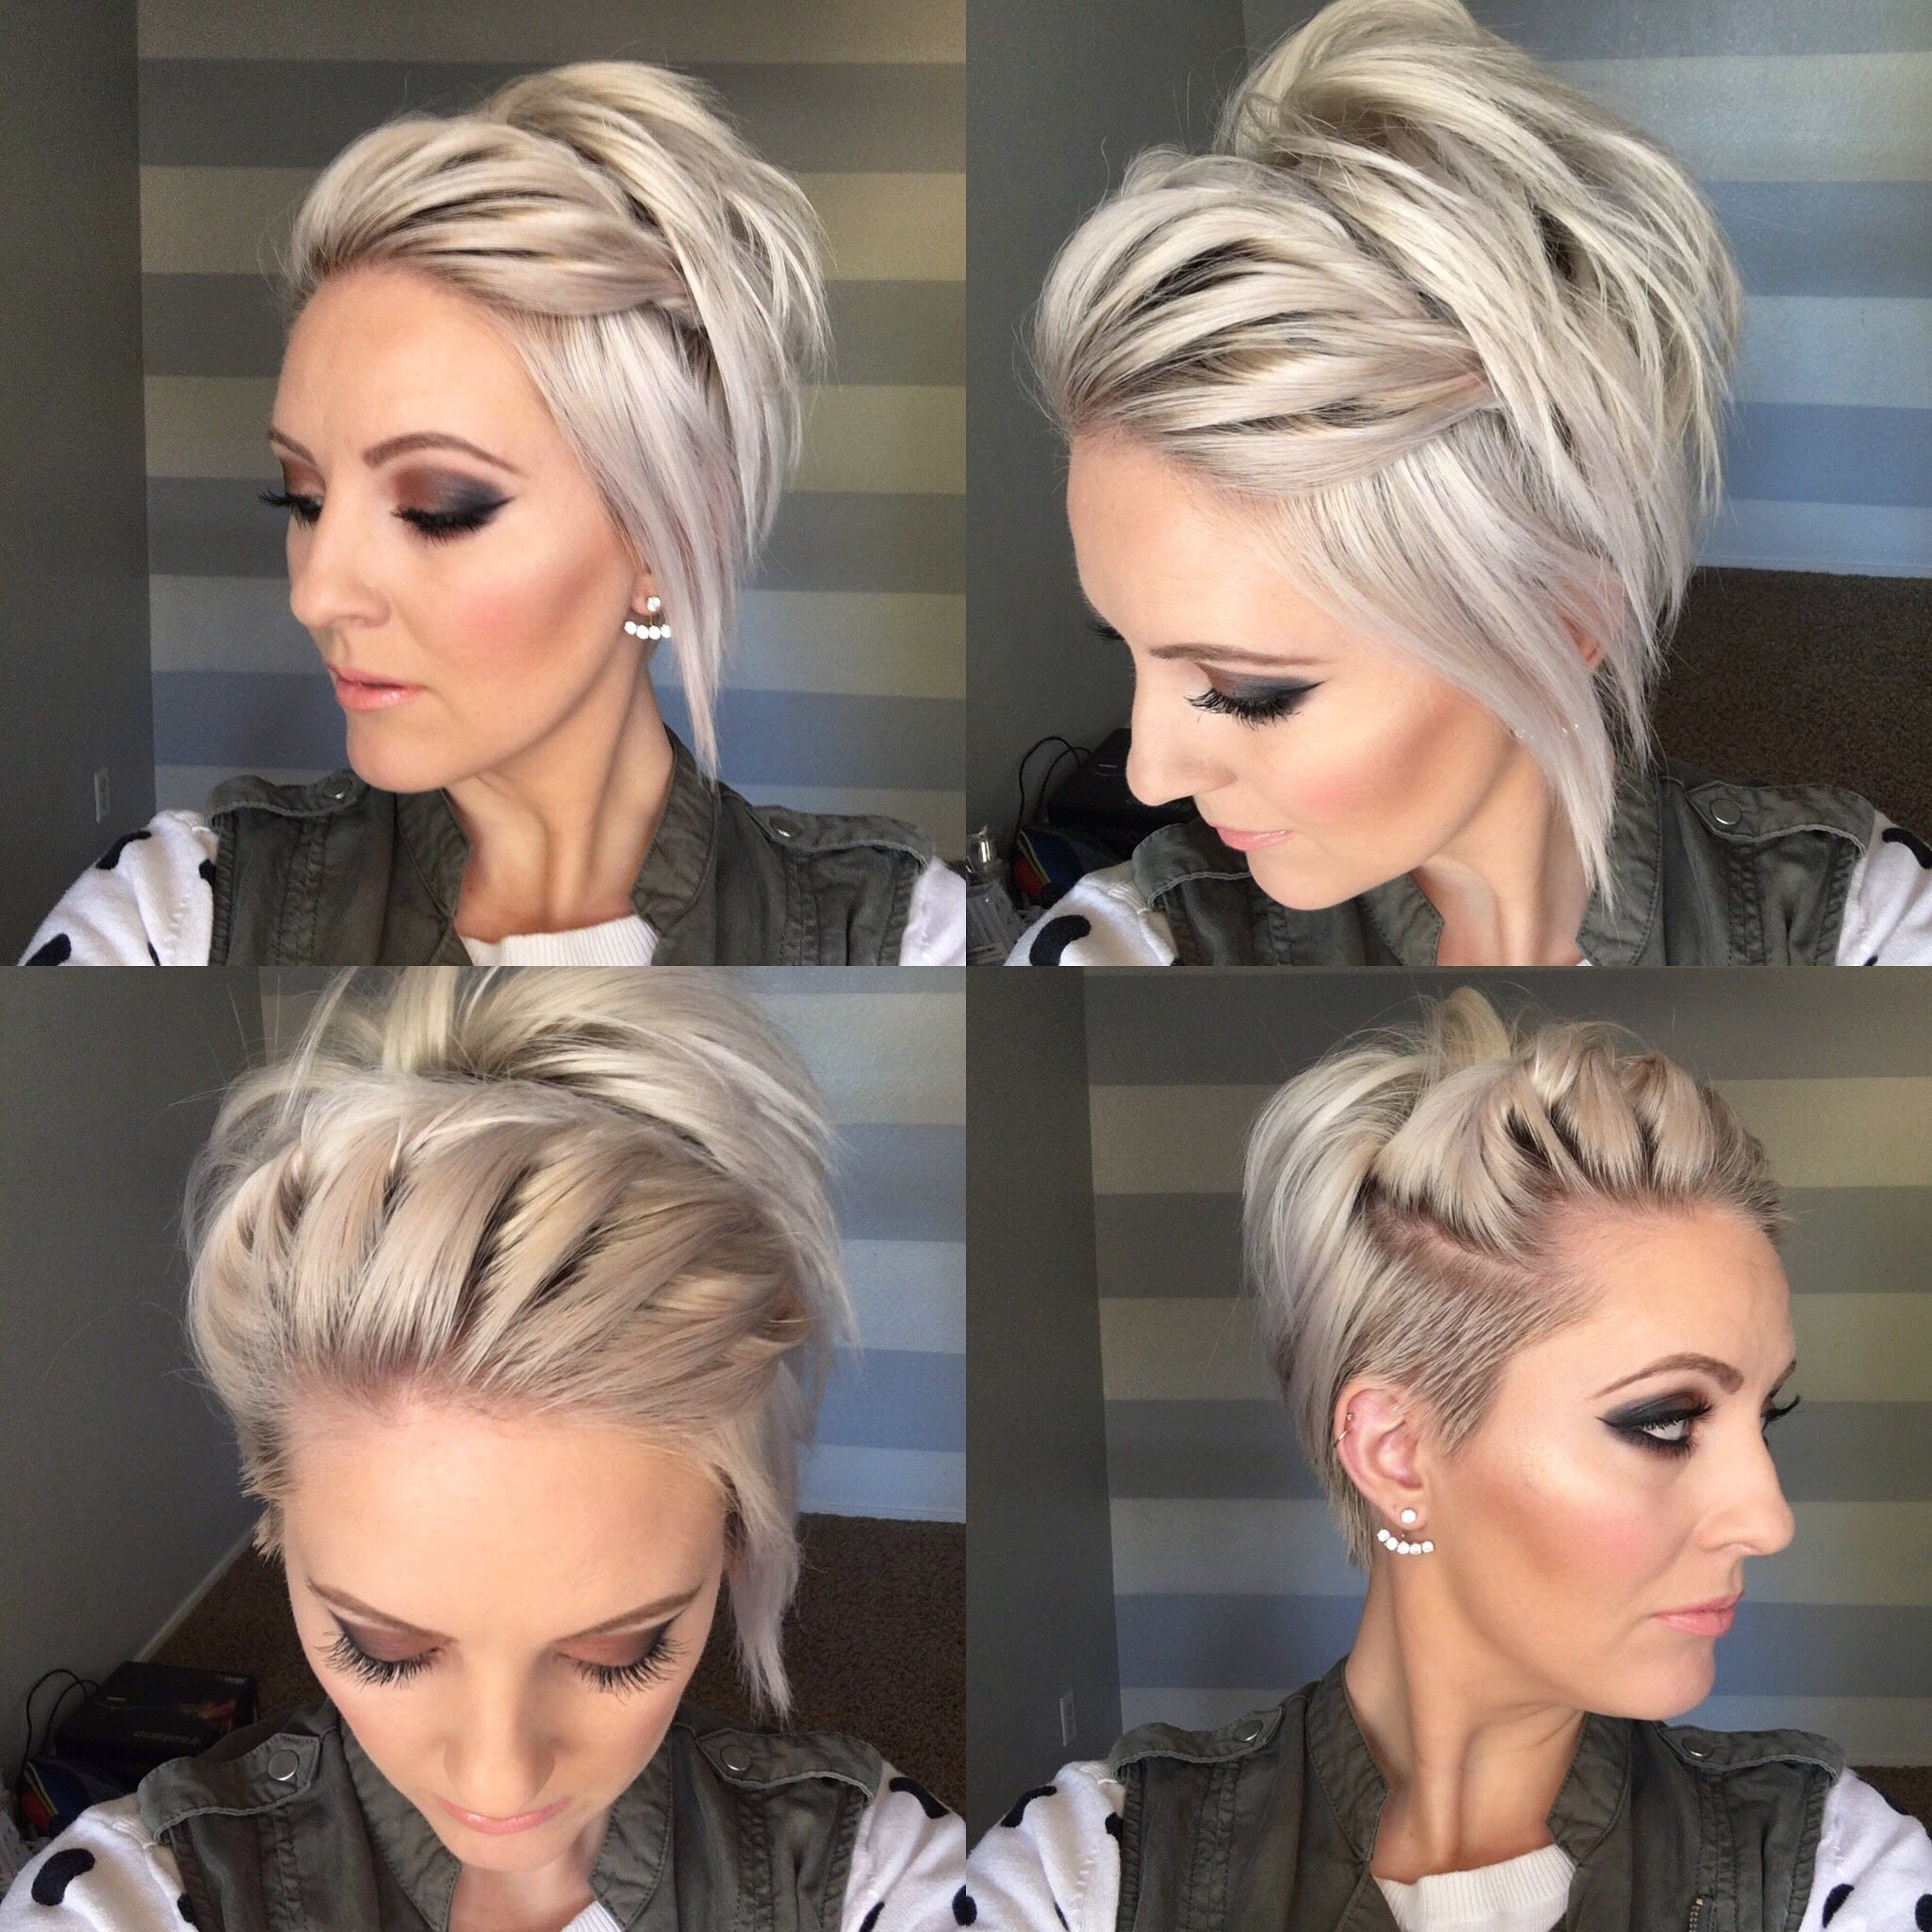 Short hair hairstyles youtube - Short Hair Styles Easy Hairstyle Youtube